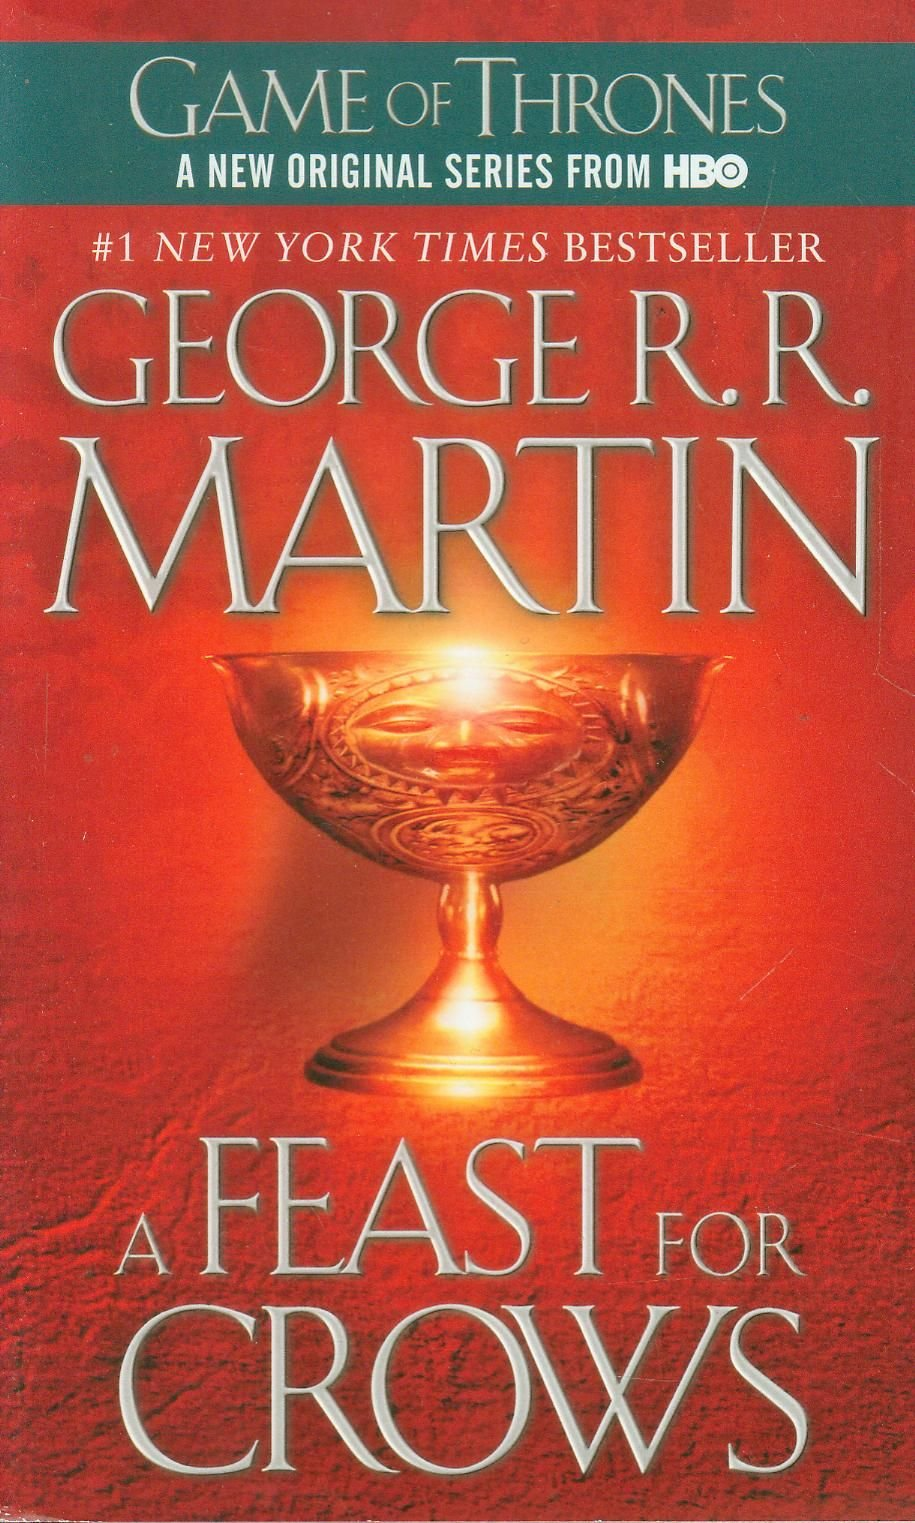 a feast for crows a song of ice and fire game of thrones  a feast for crows a song of ice and fire game of thrones george r r martin 9780553582024 com books